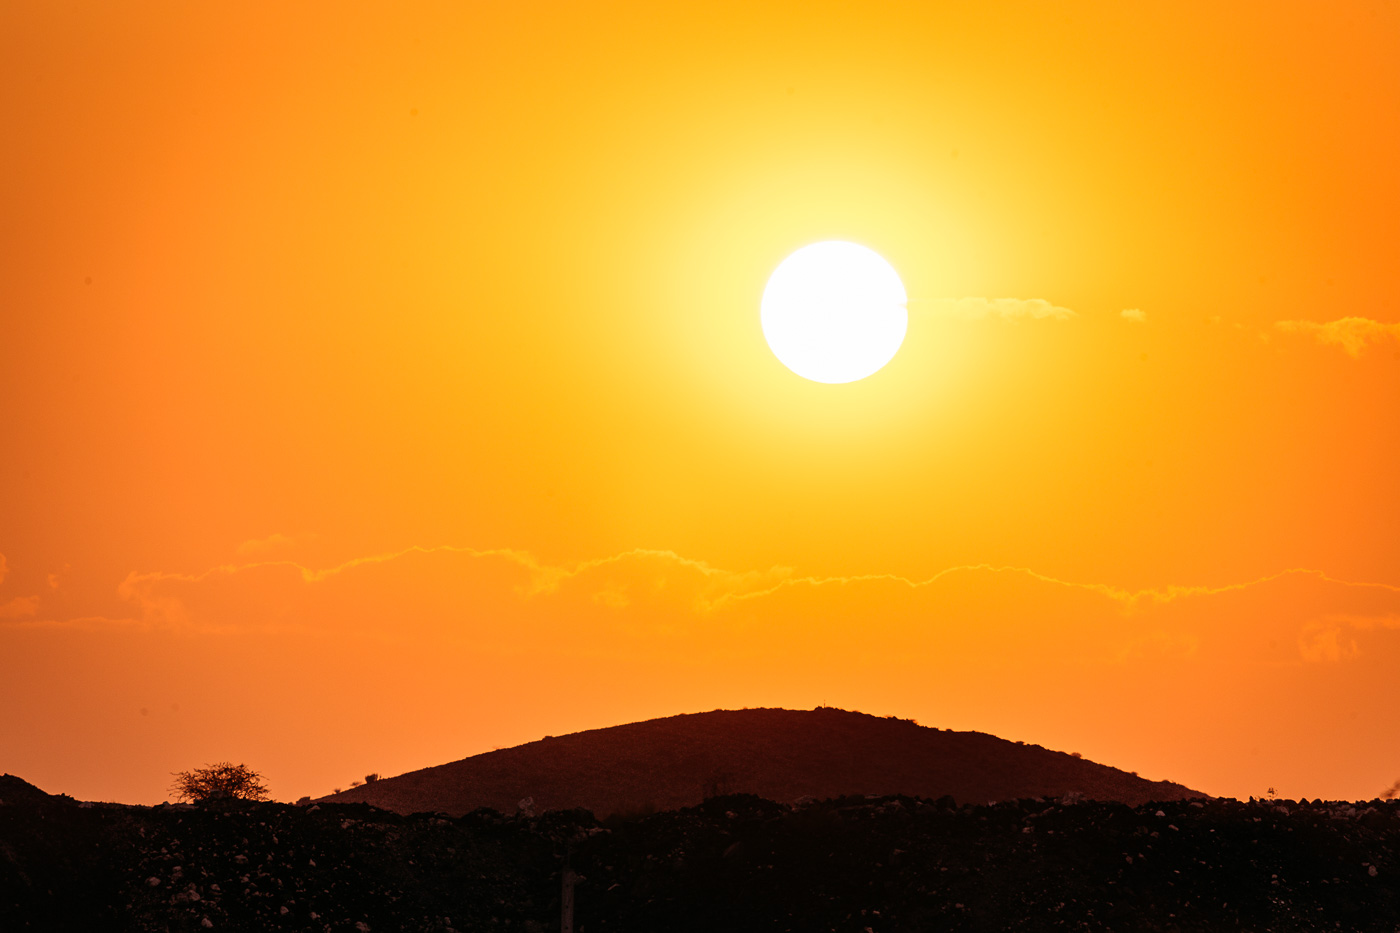 A daily earth scorching sunset over the Namib desert.